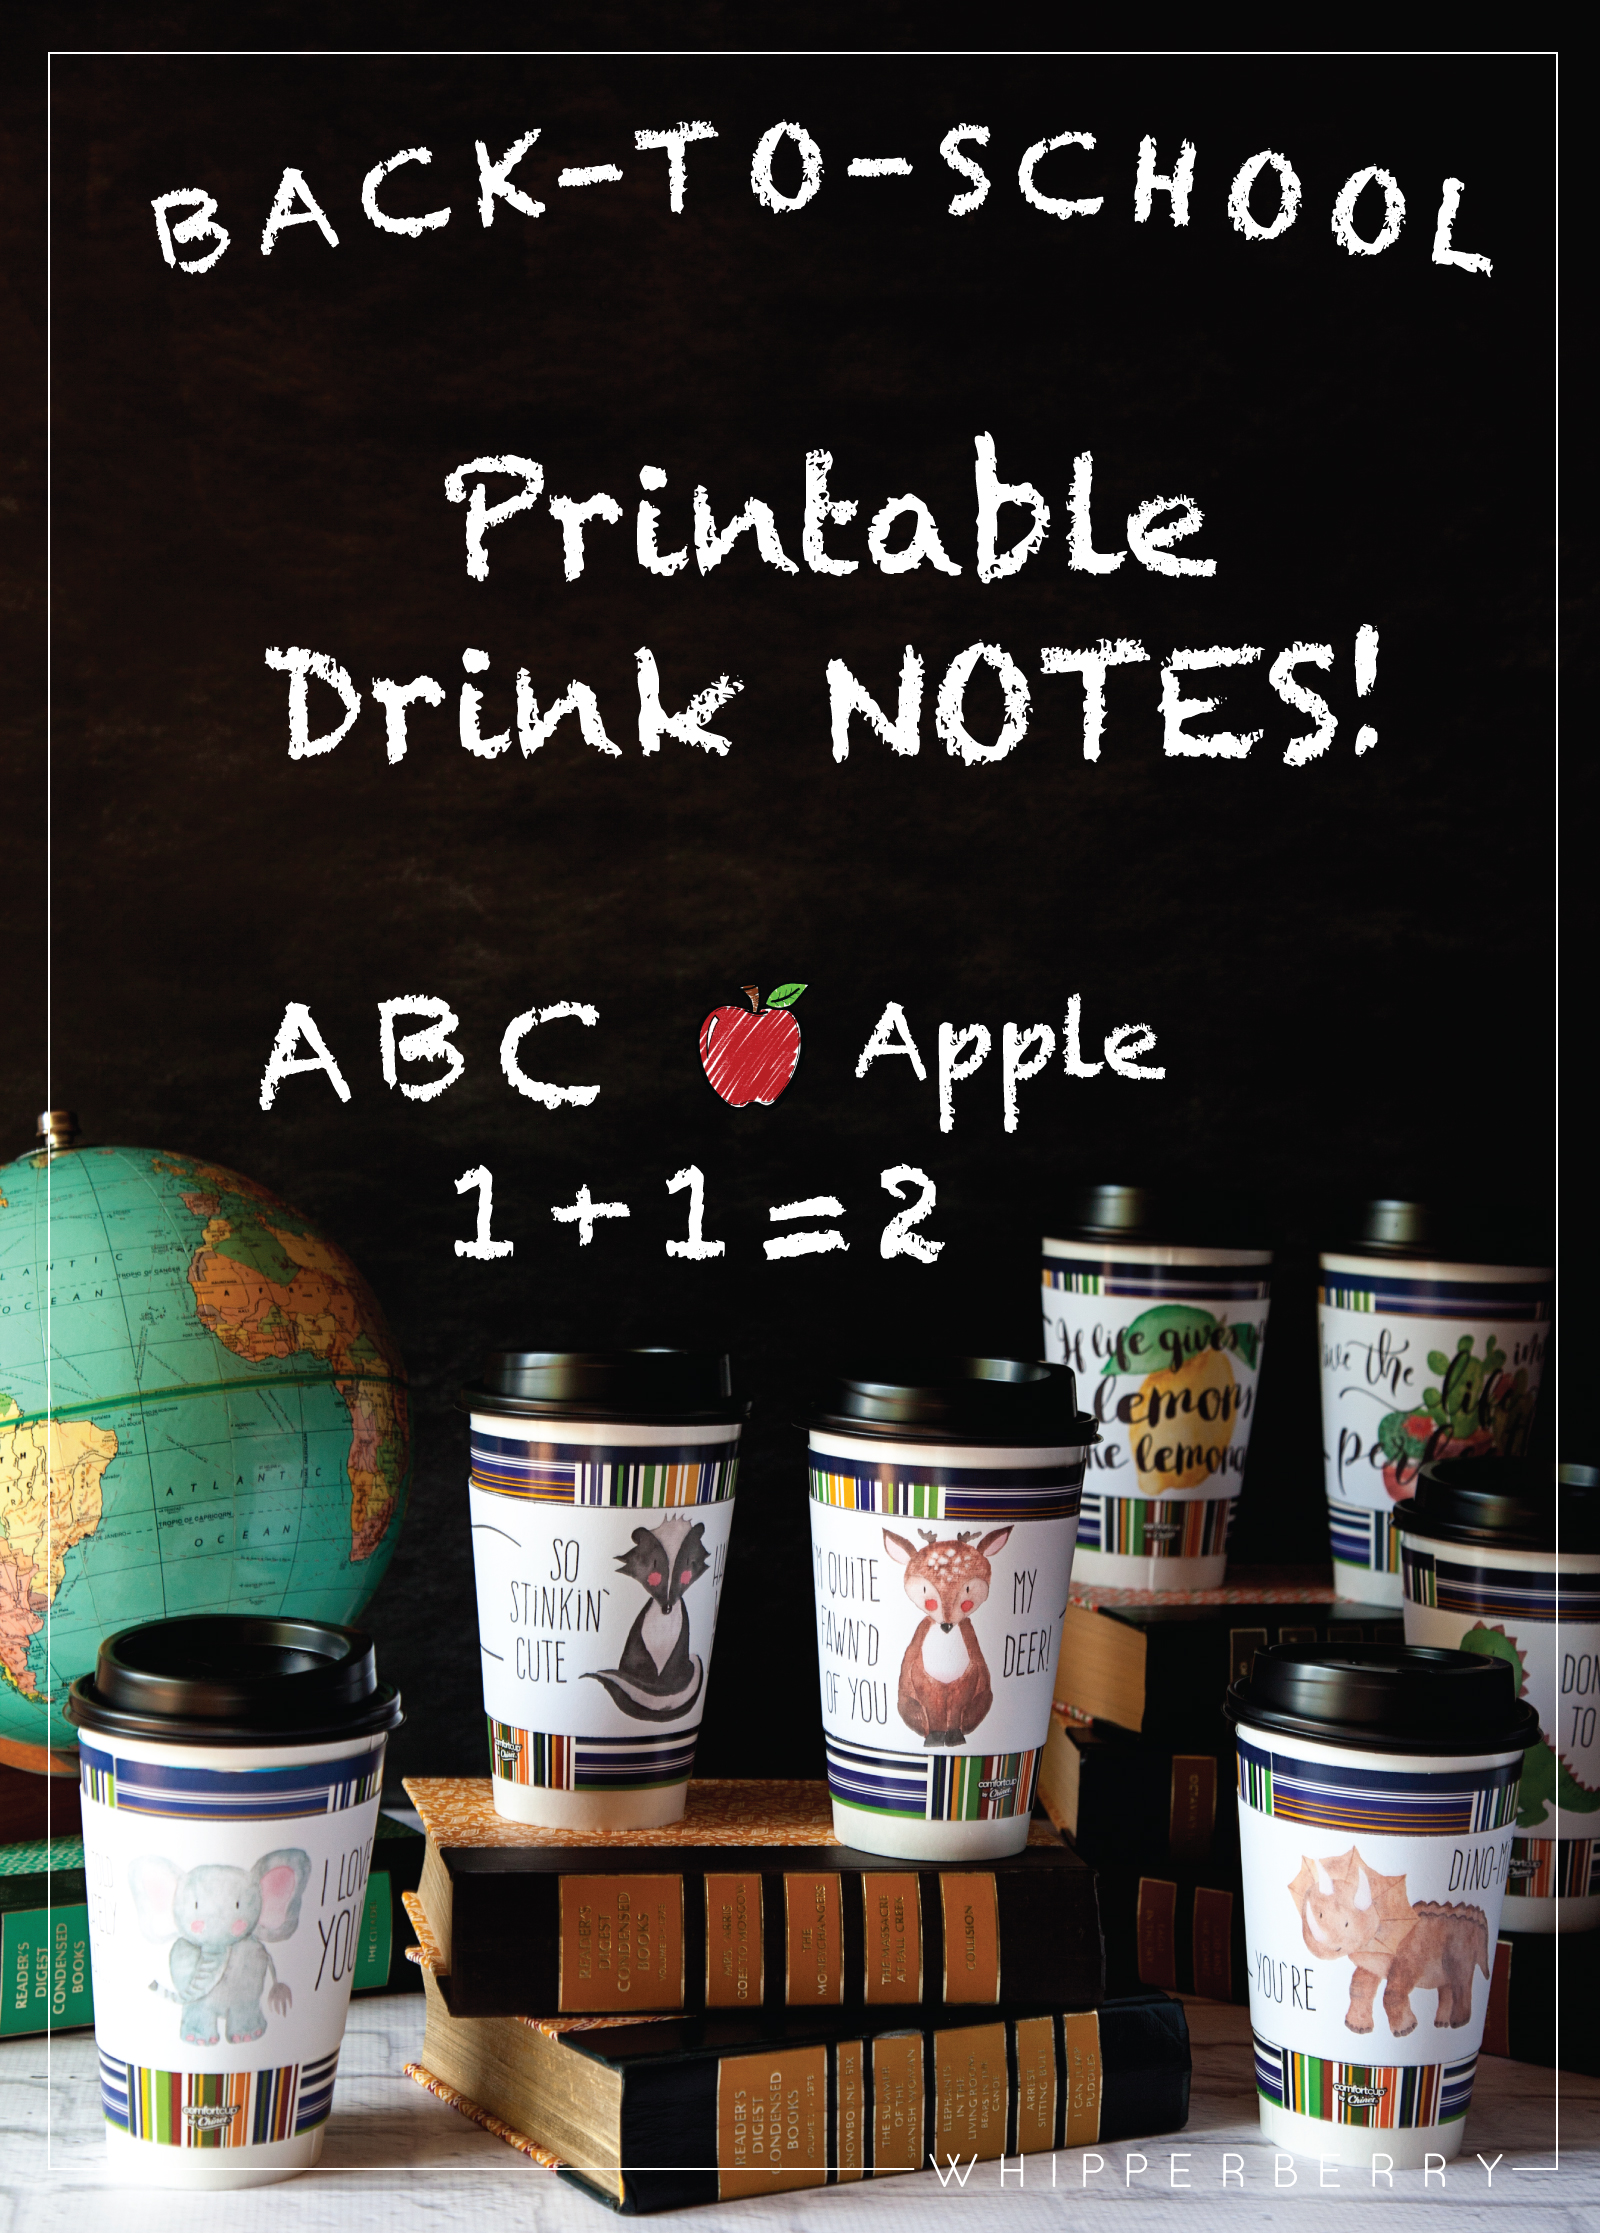 9 Great Printable Drink Notes for Back-To-School